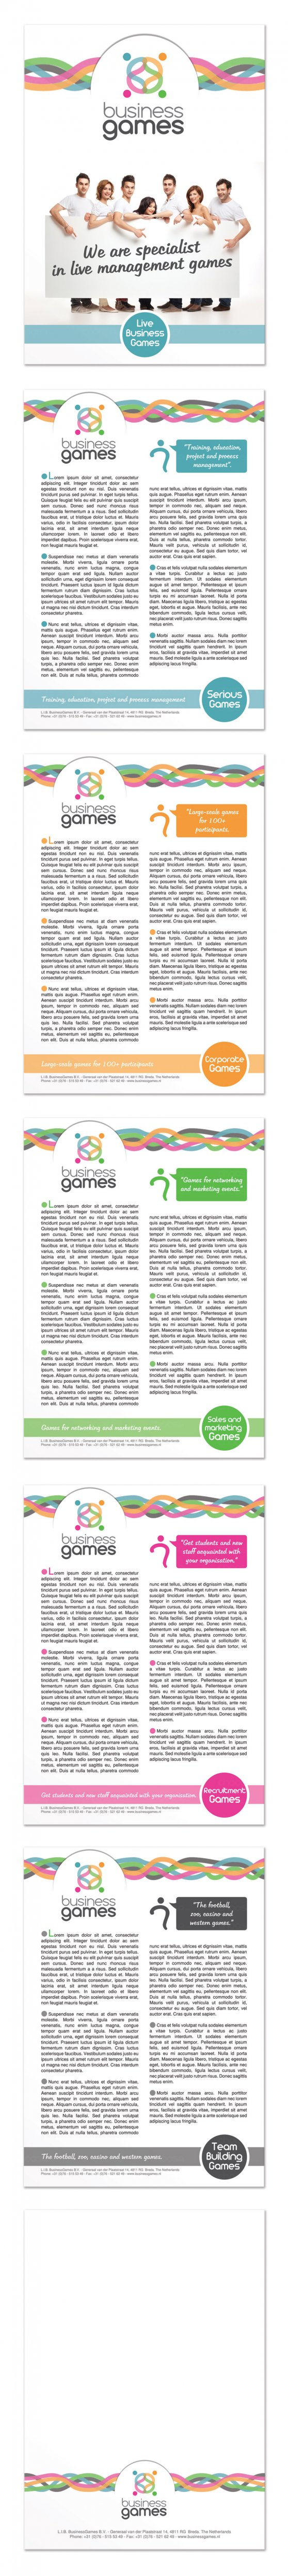 BusinessGames-3